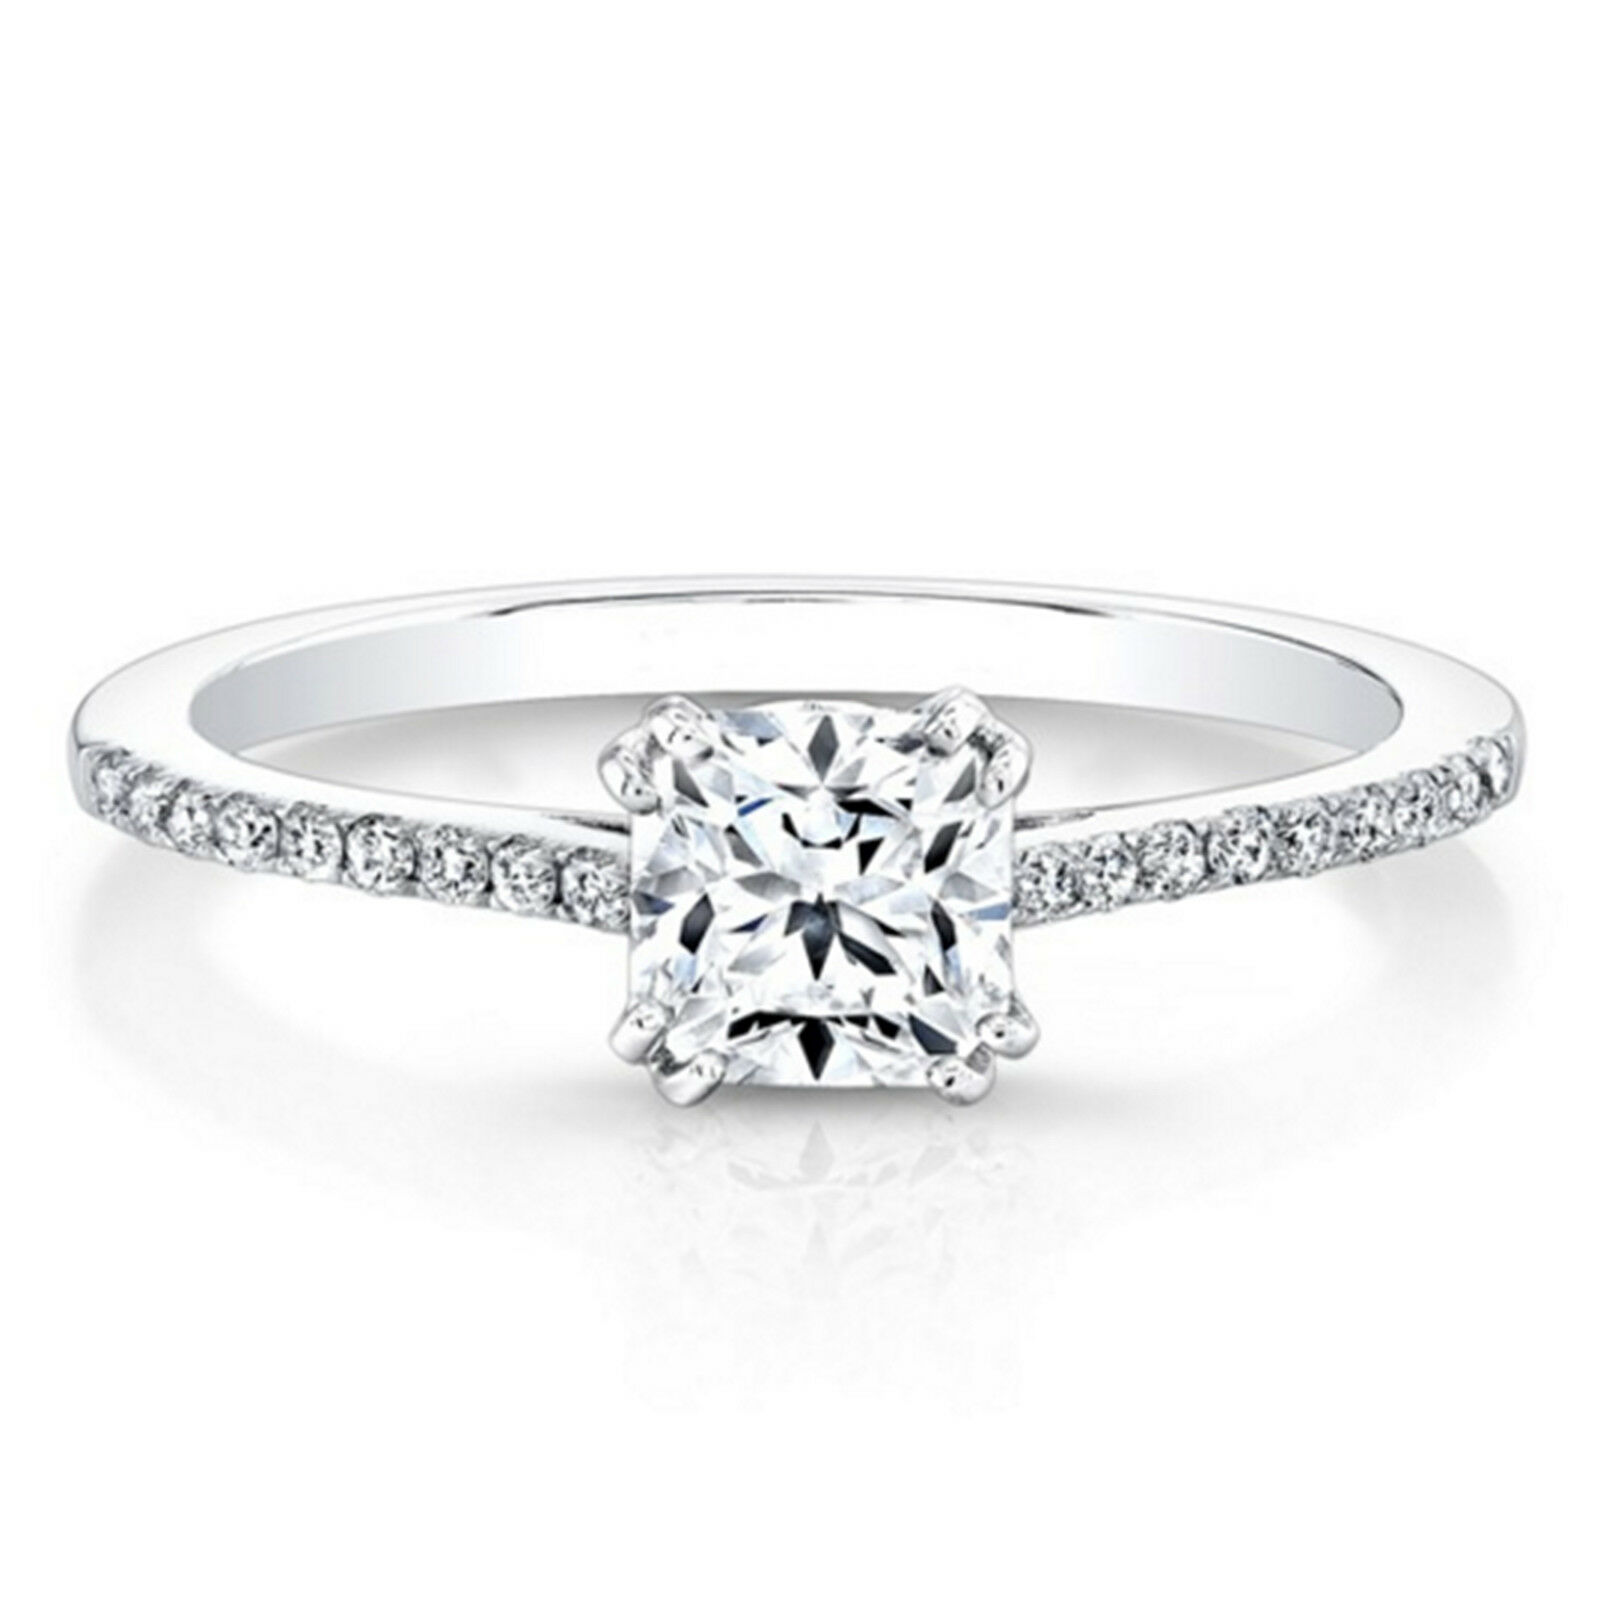 0.59 Ct Real Diamond Wedding Engagement Rings 14K Solid White gold Women's Rings